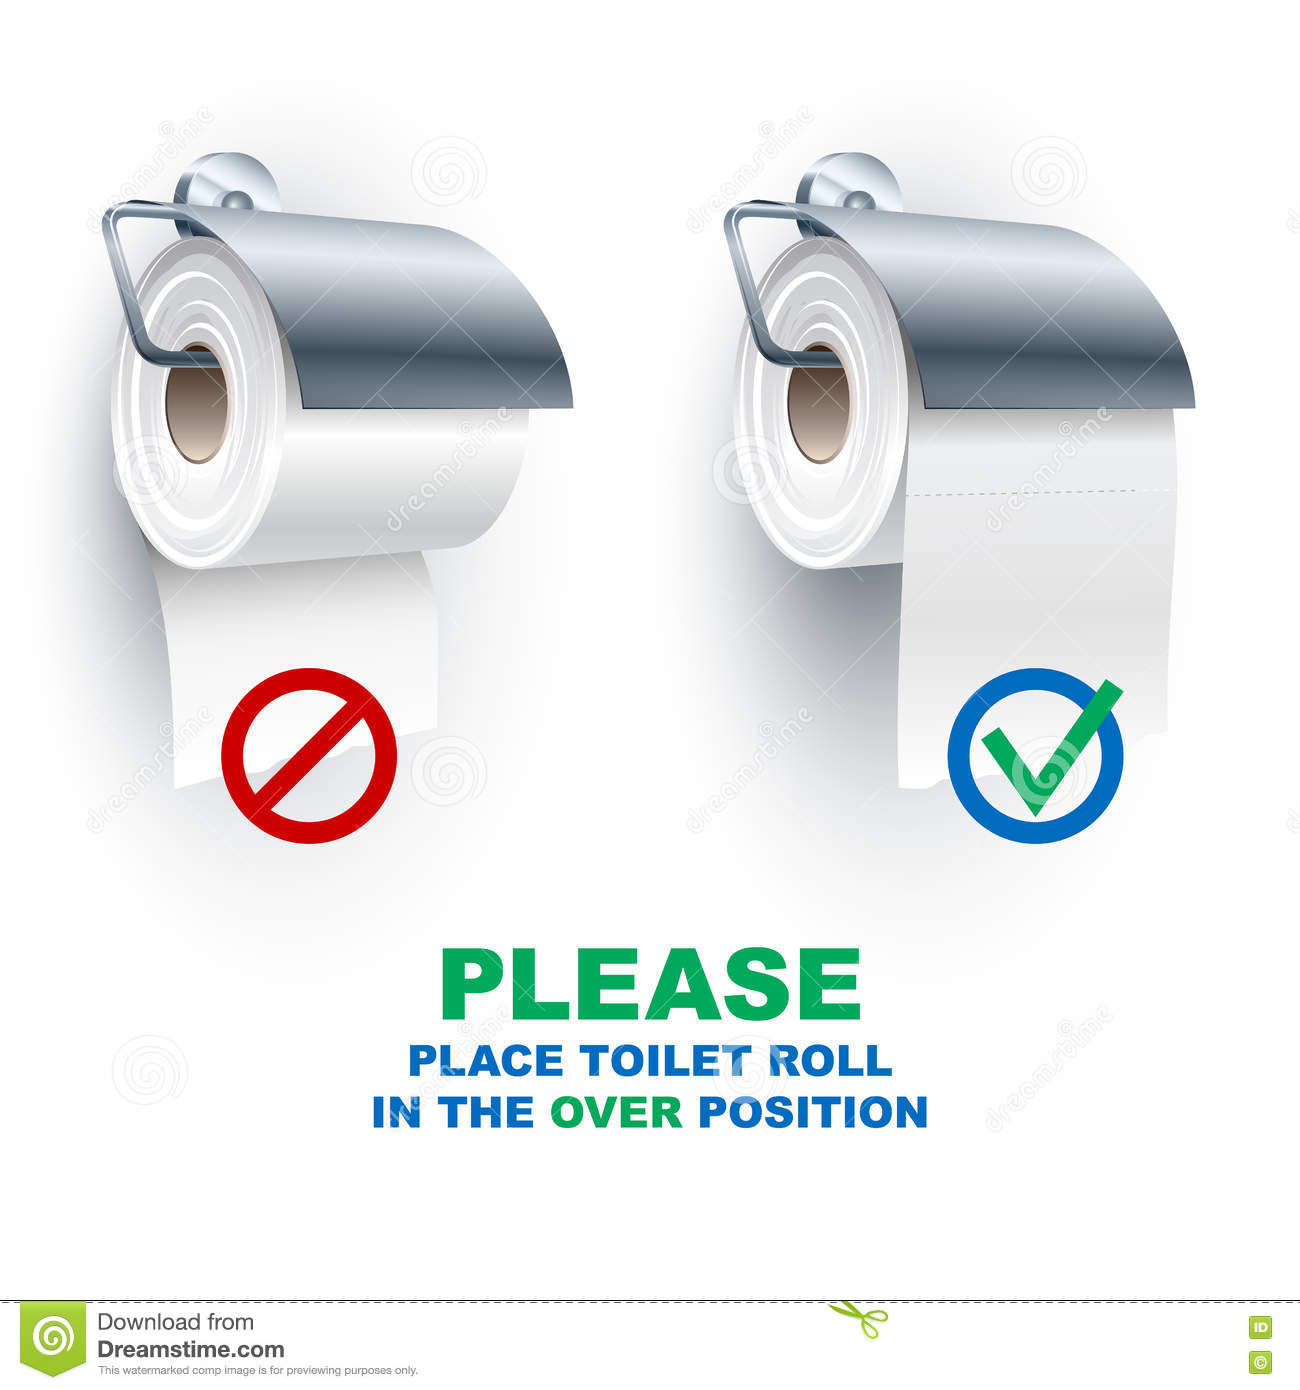 Toilet Paper Roll Spindle Under Over Position Rules Stock